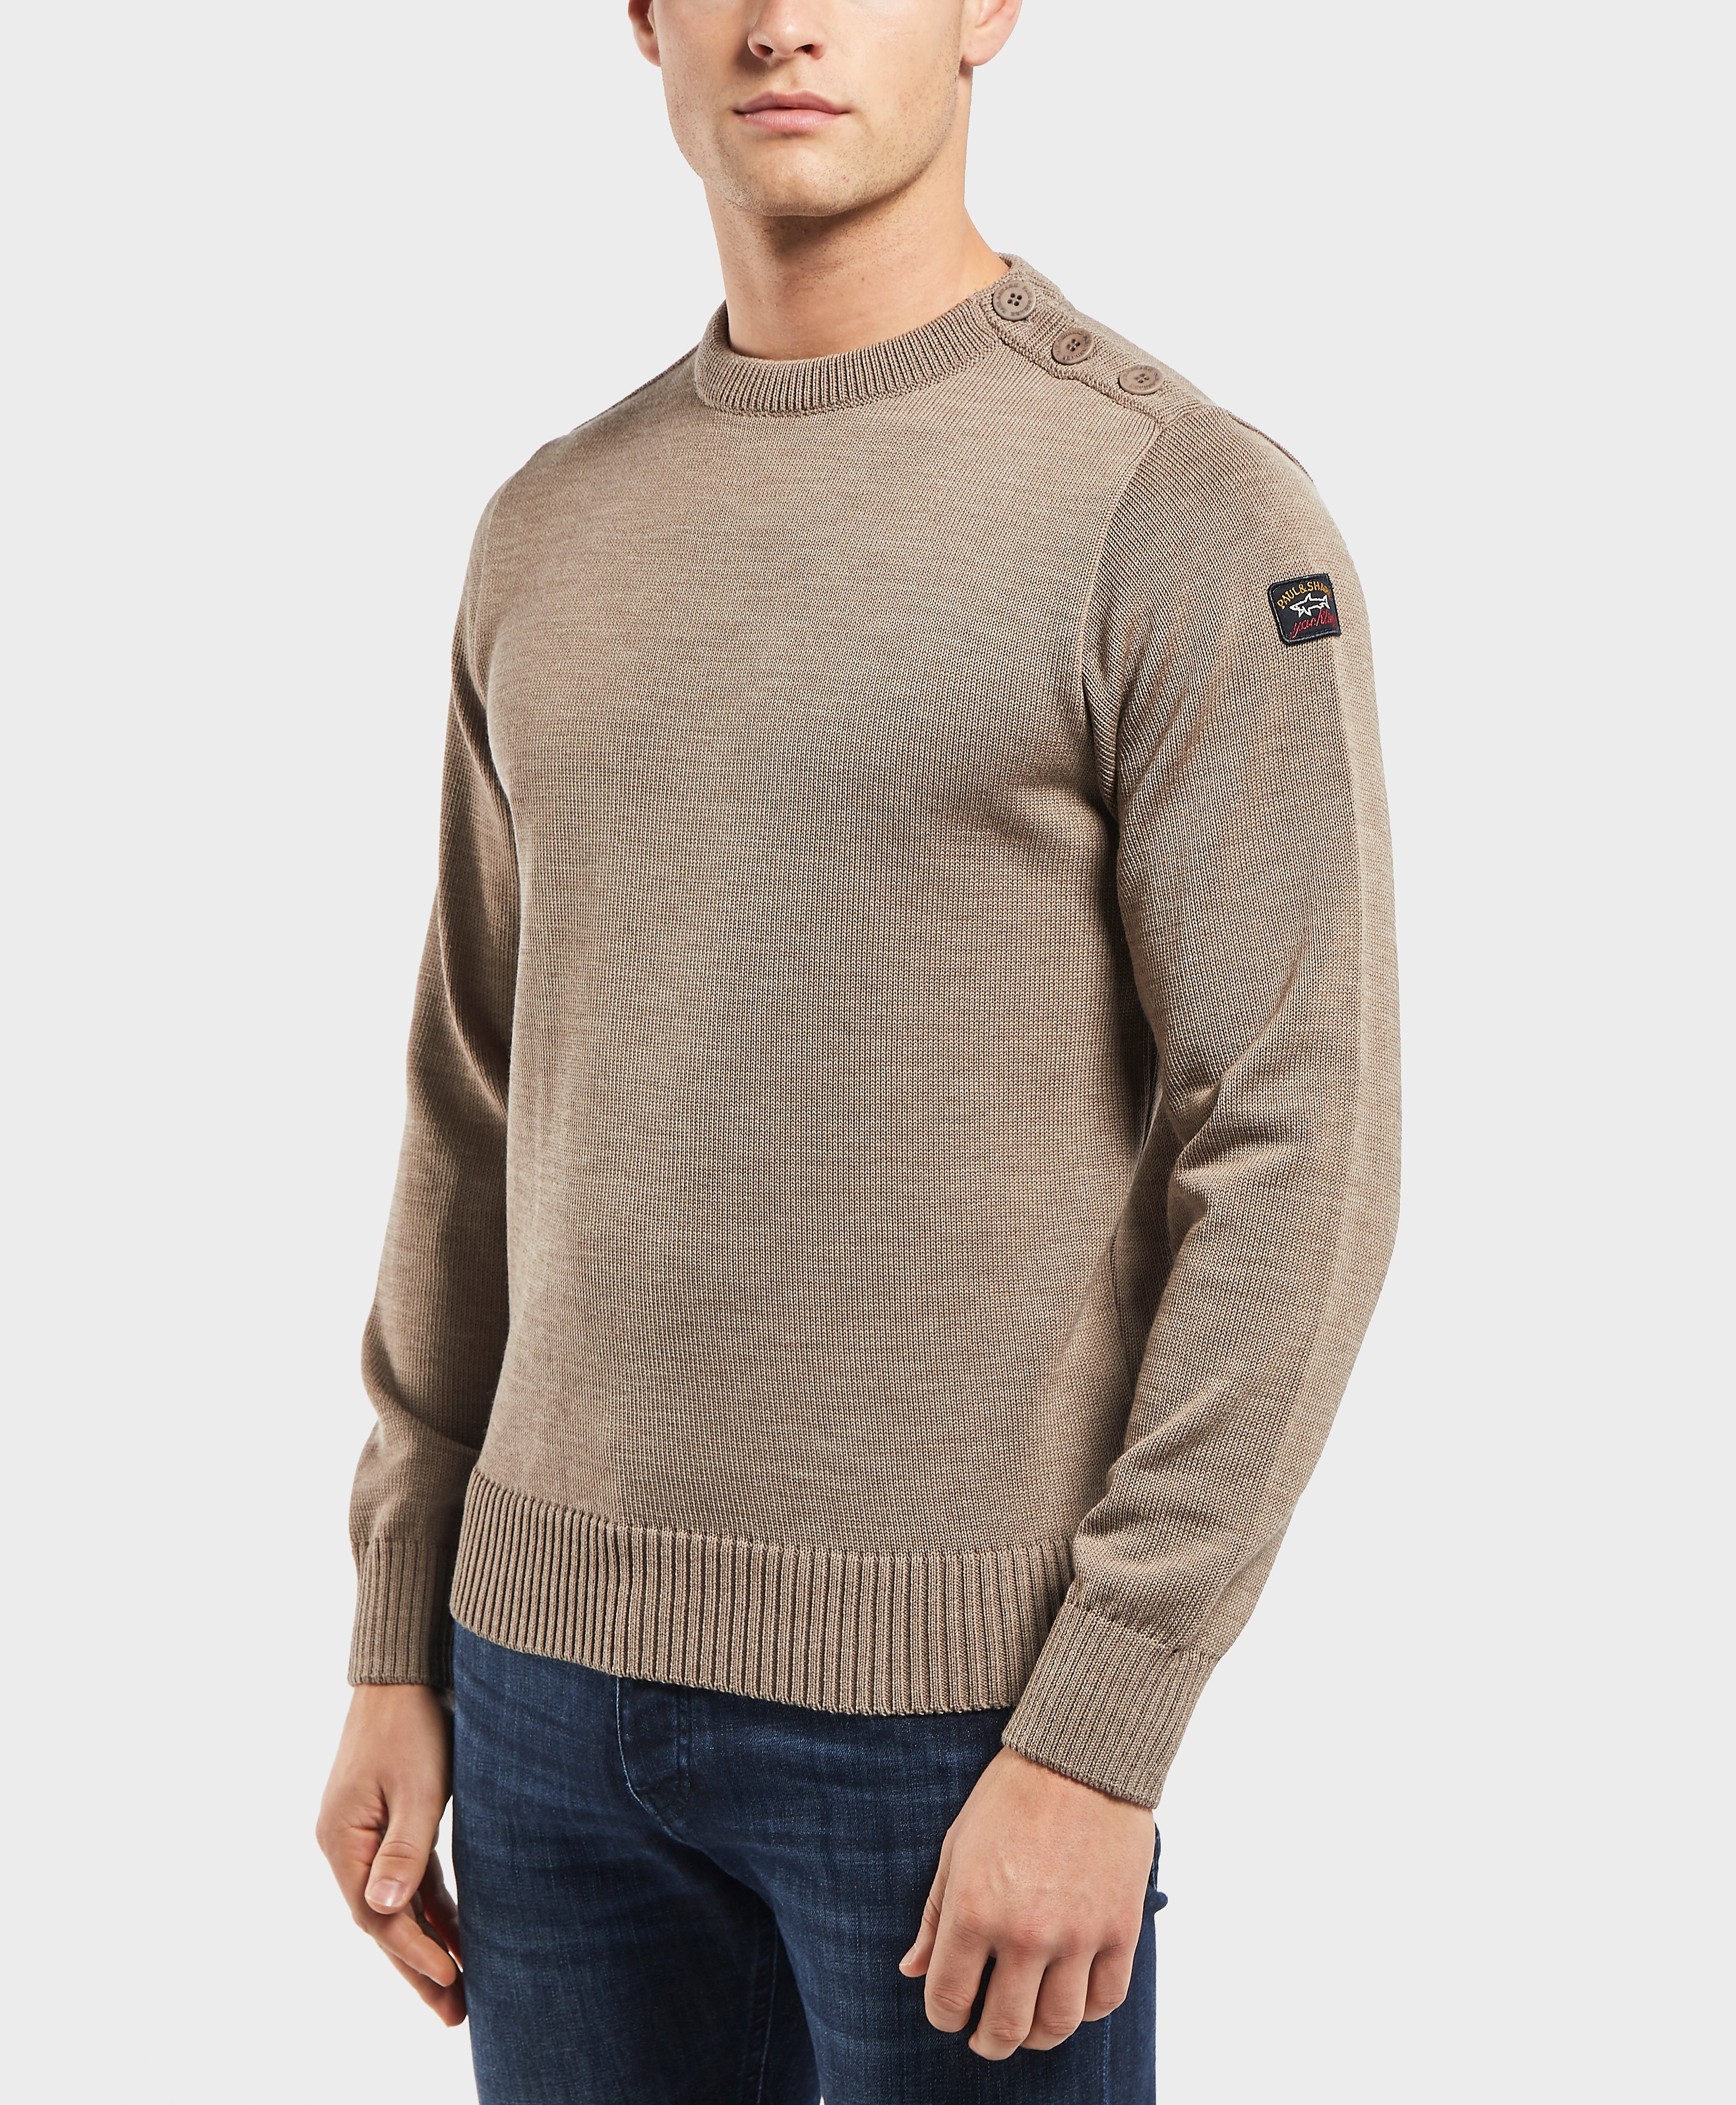 Paul and Shark Button Shoulder Knit Jumper - Exclusive